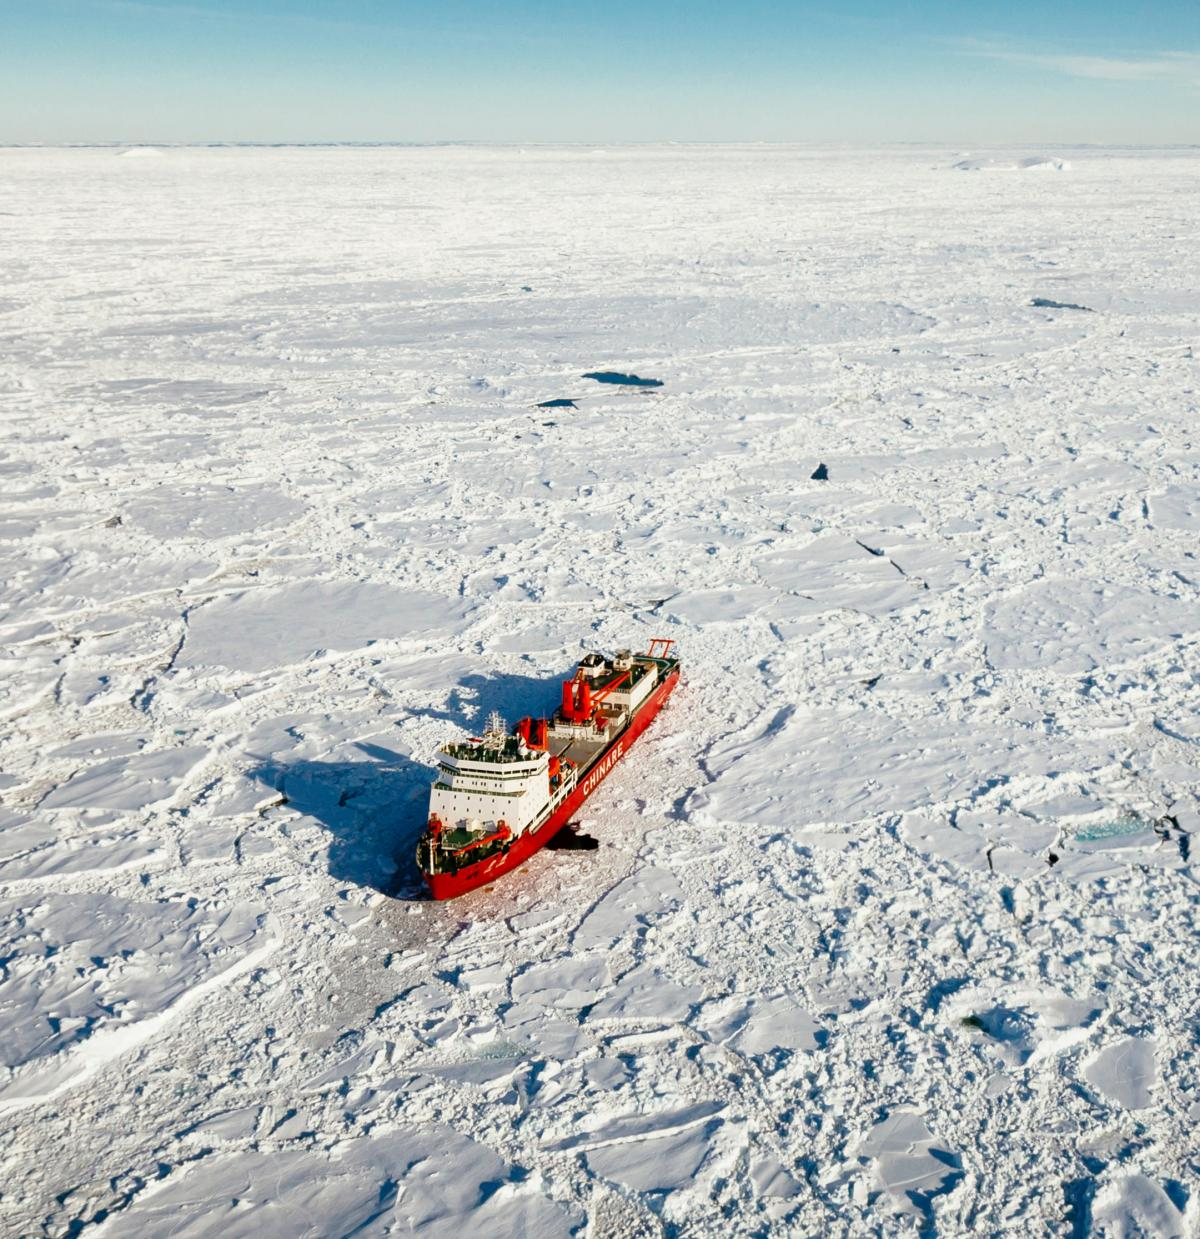 The Chinese icebreaker Xue Long beset in ice off East Antarctica.